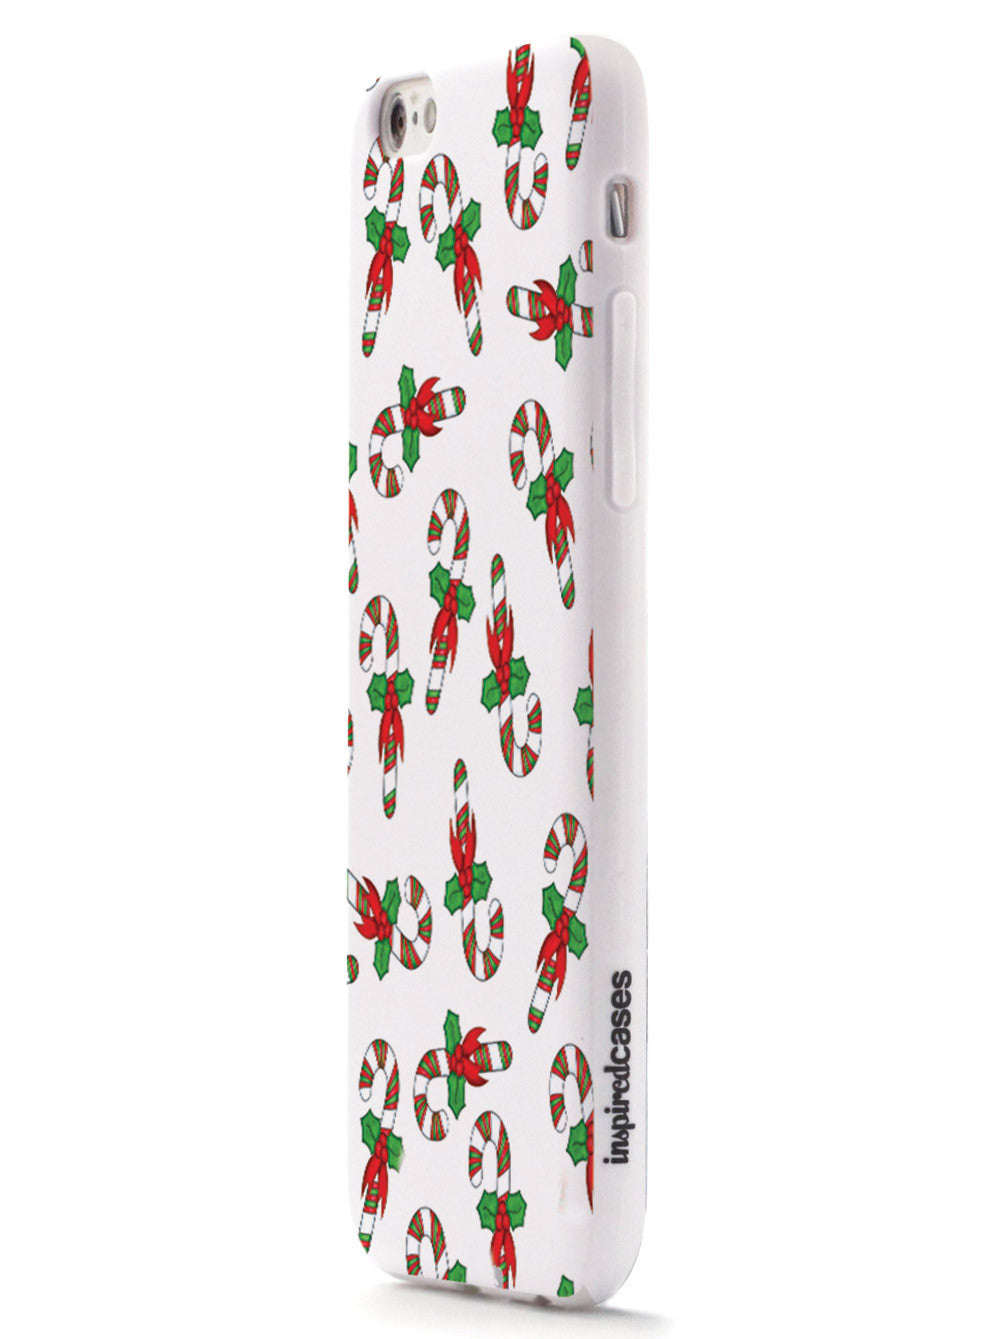 Candy Canes Christmas Pattern Case